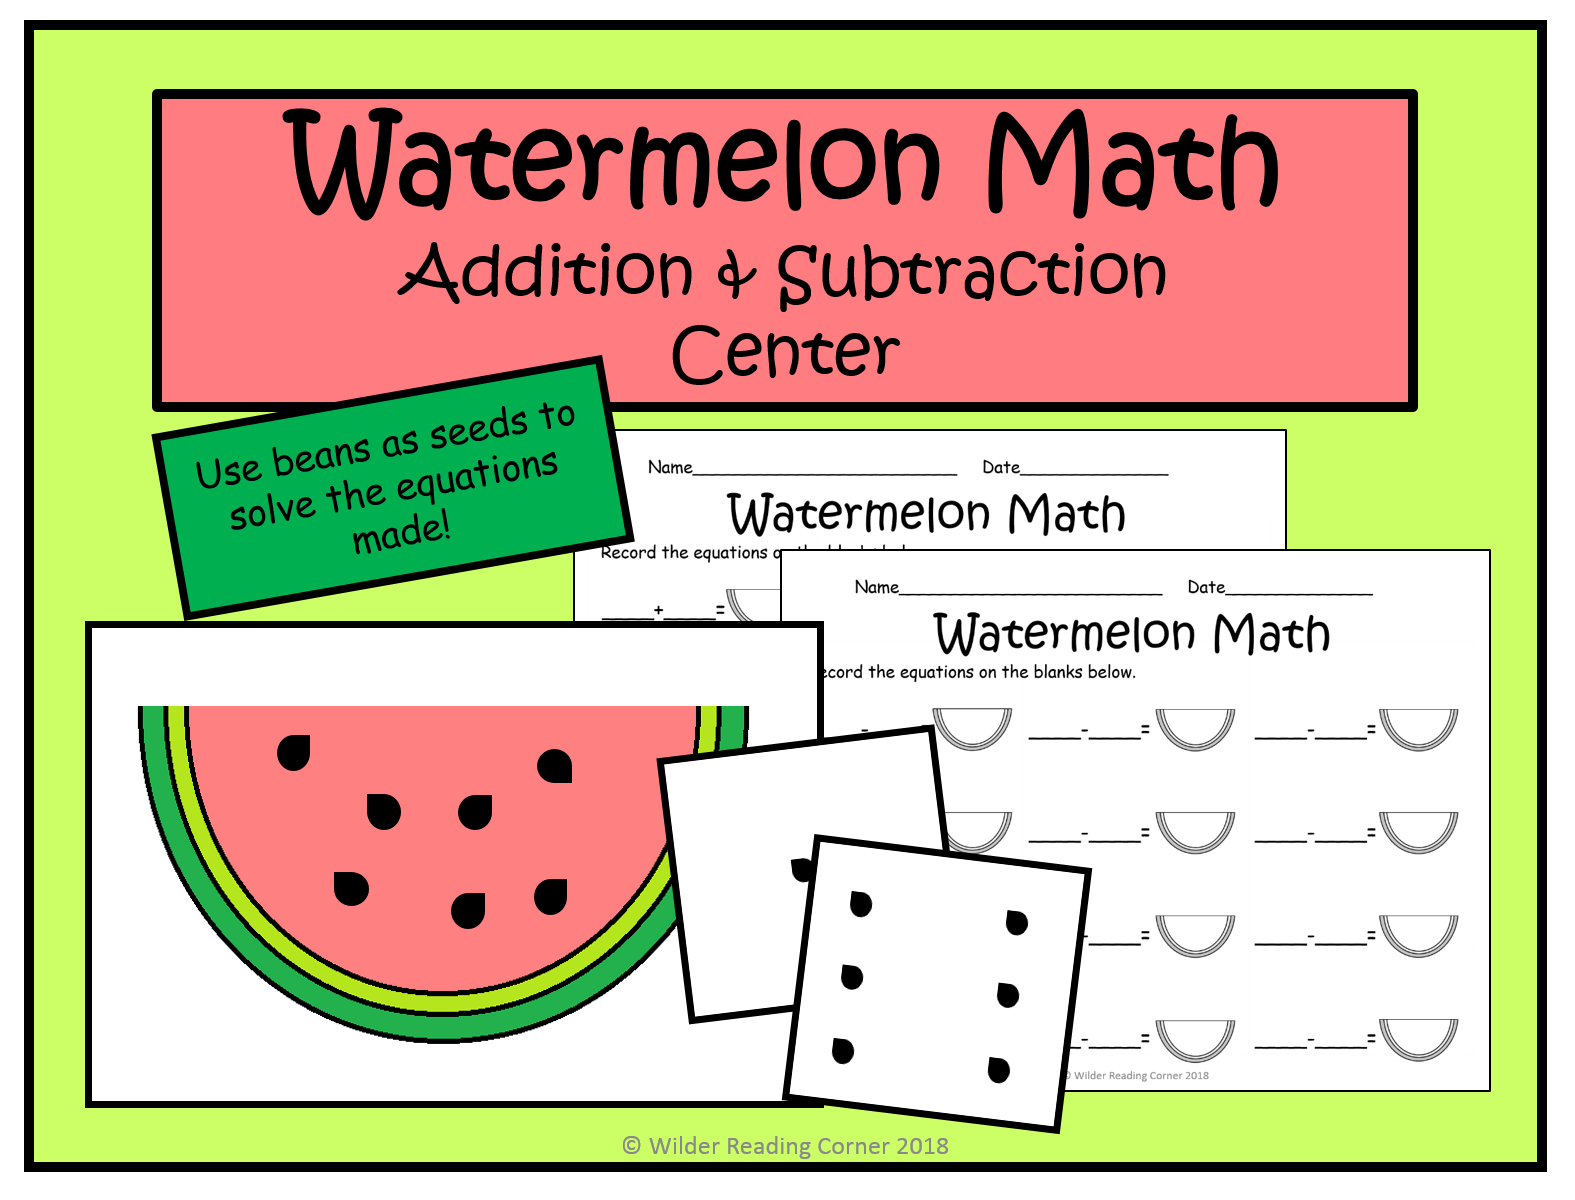 Addition And Subtraction Math Center Watermelon Math